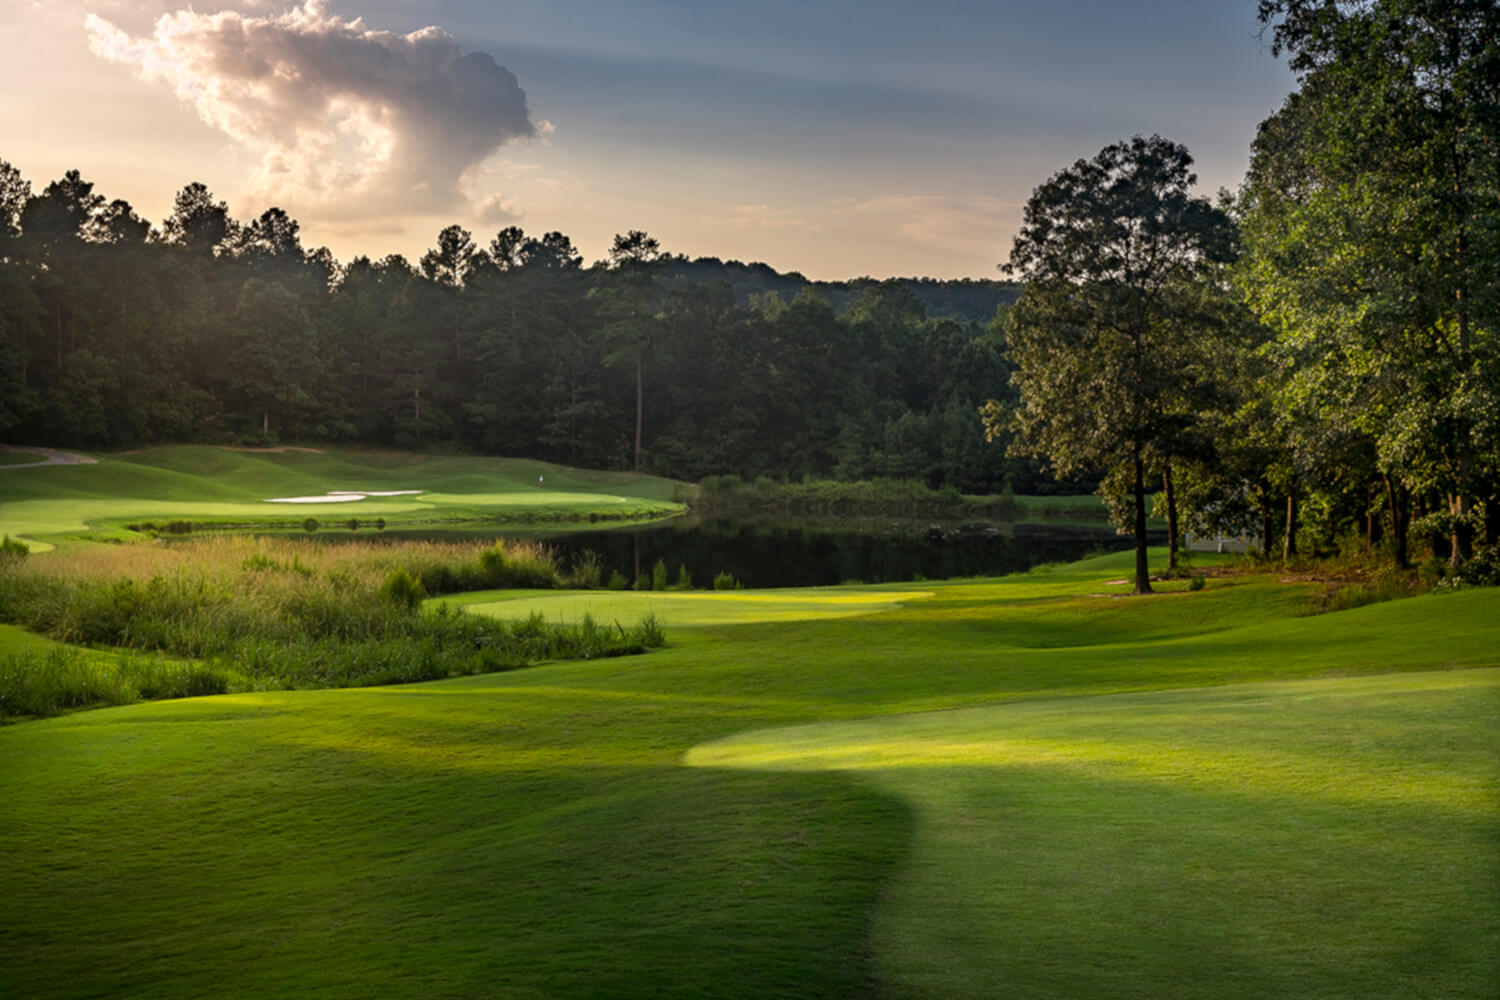 CHÂTEAU ÉLAN GOLF CLUB AND THE WESTIN SAVANNAH HARBOR HONORED BY GEORGIA GOLF & TRAVEL MAGAZINE